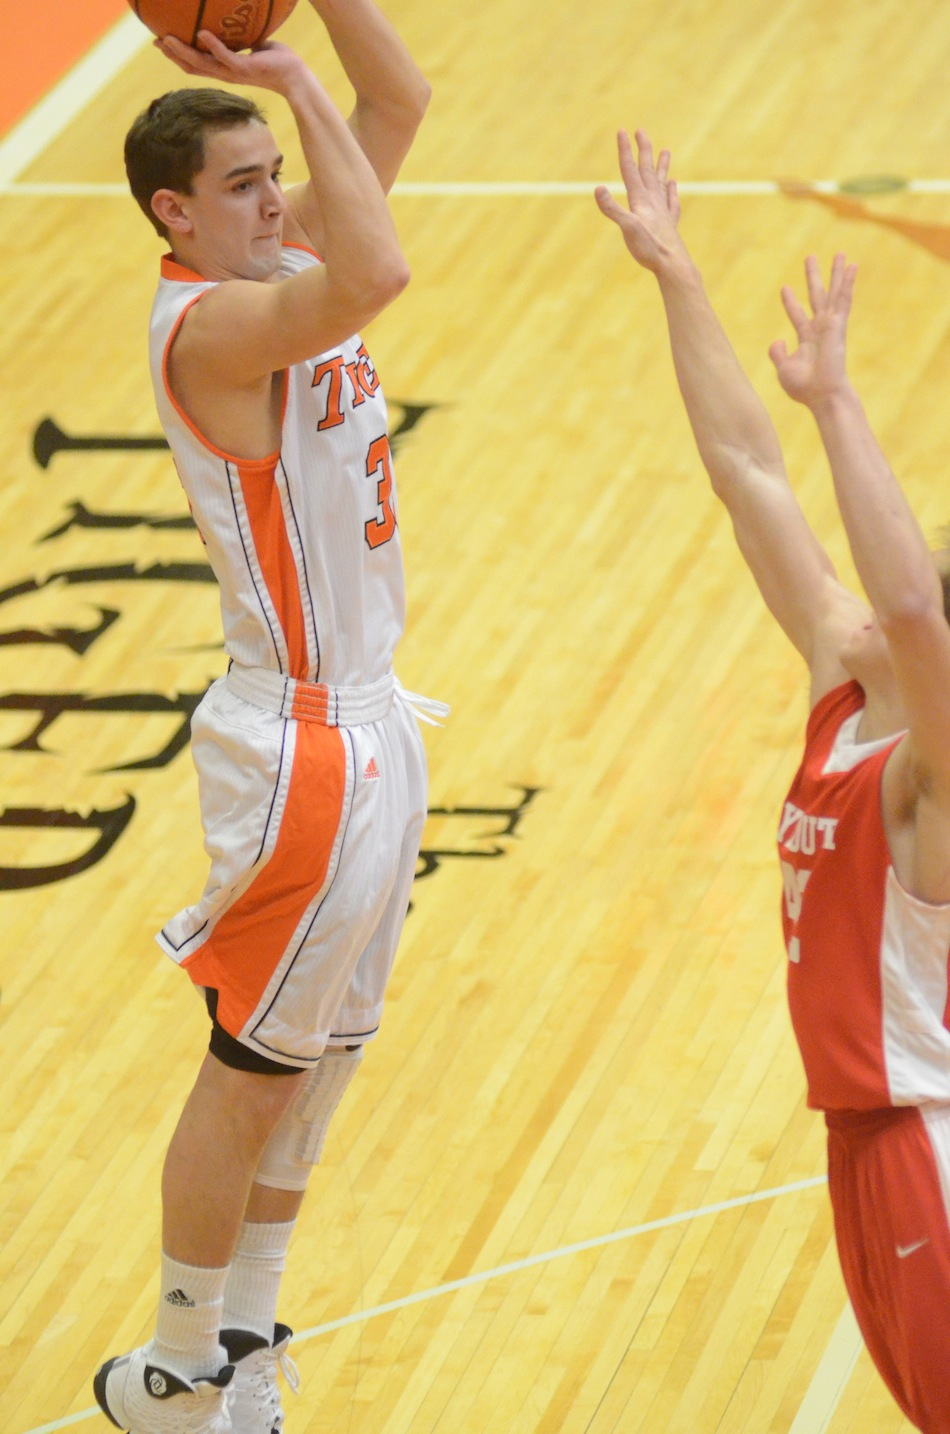 Jordan Stookey led Warsaw with 16 points versus Plymouth Thursday night.